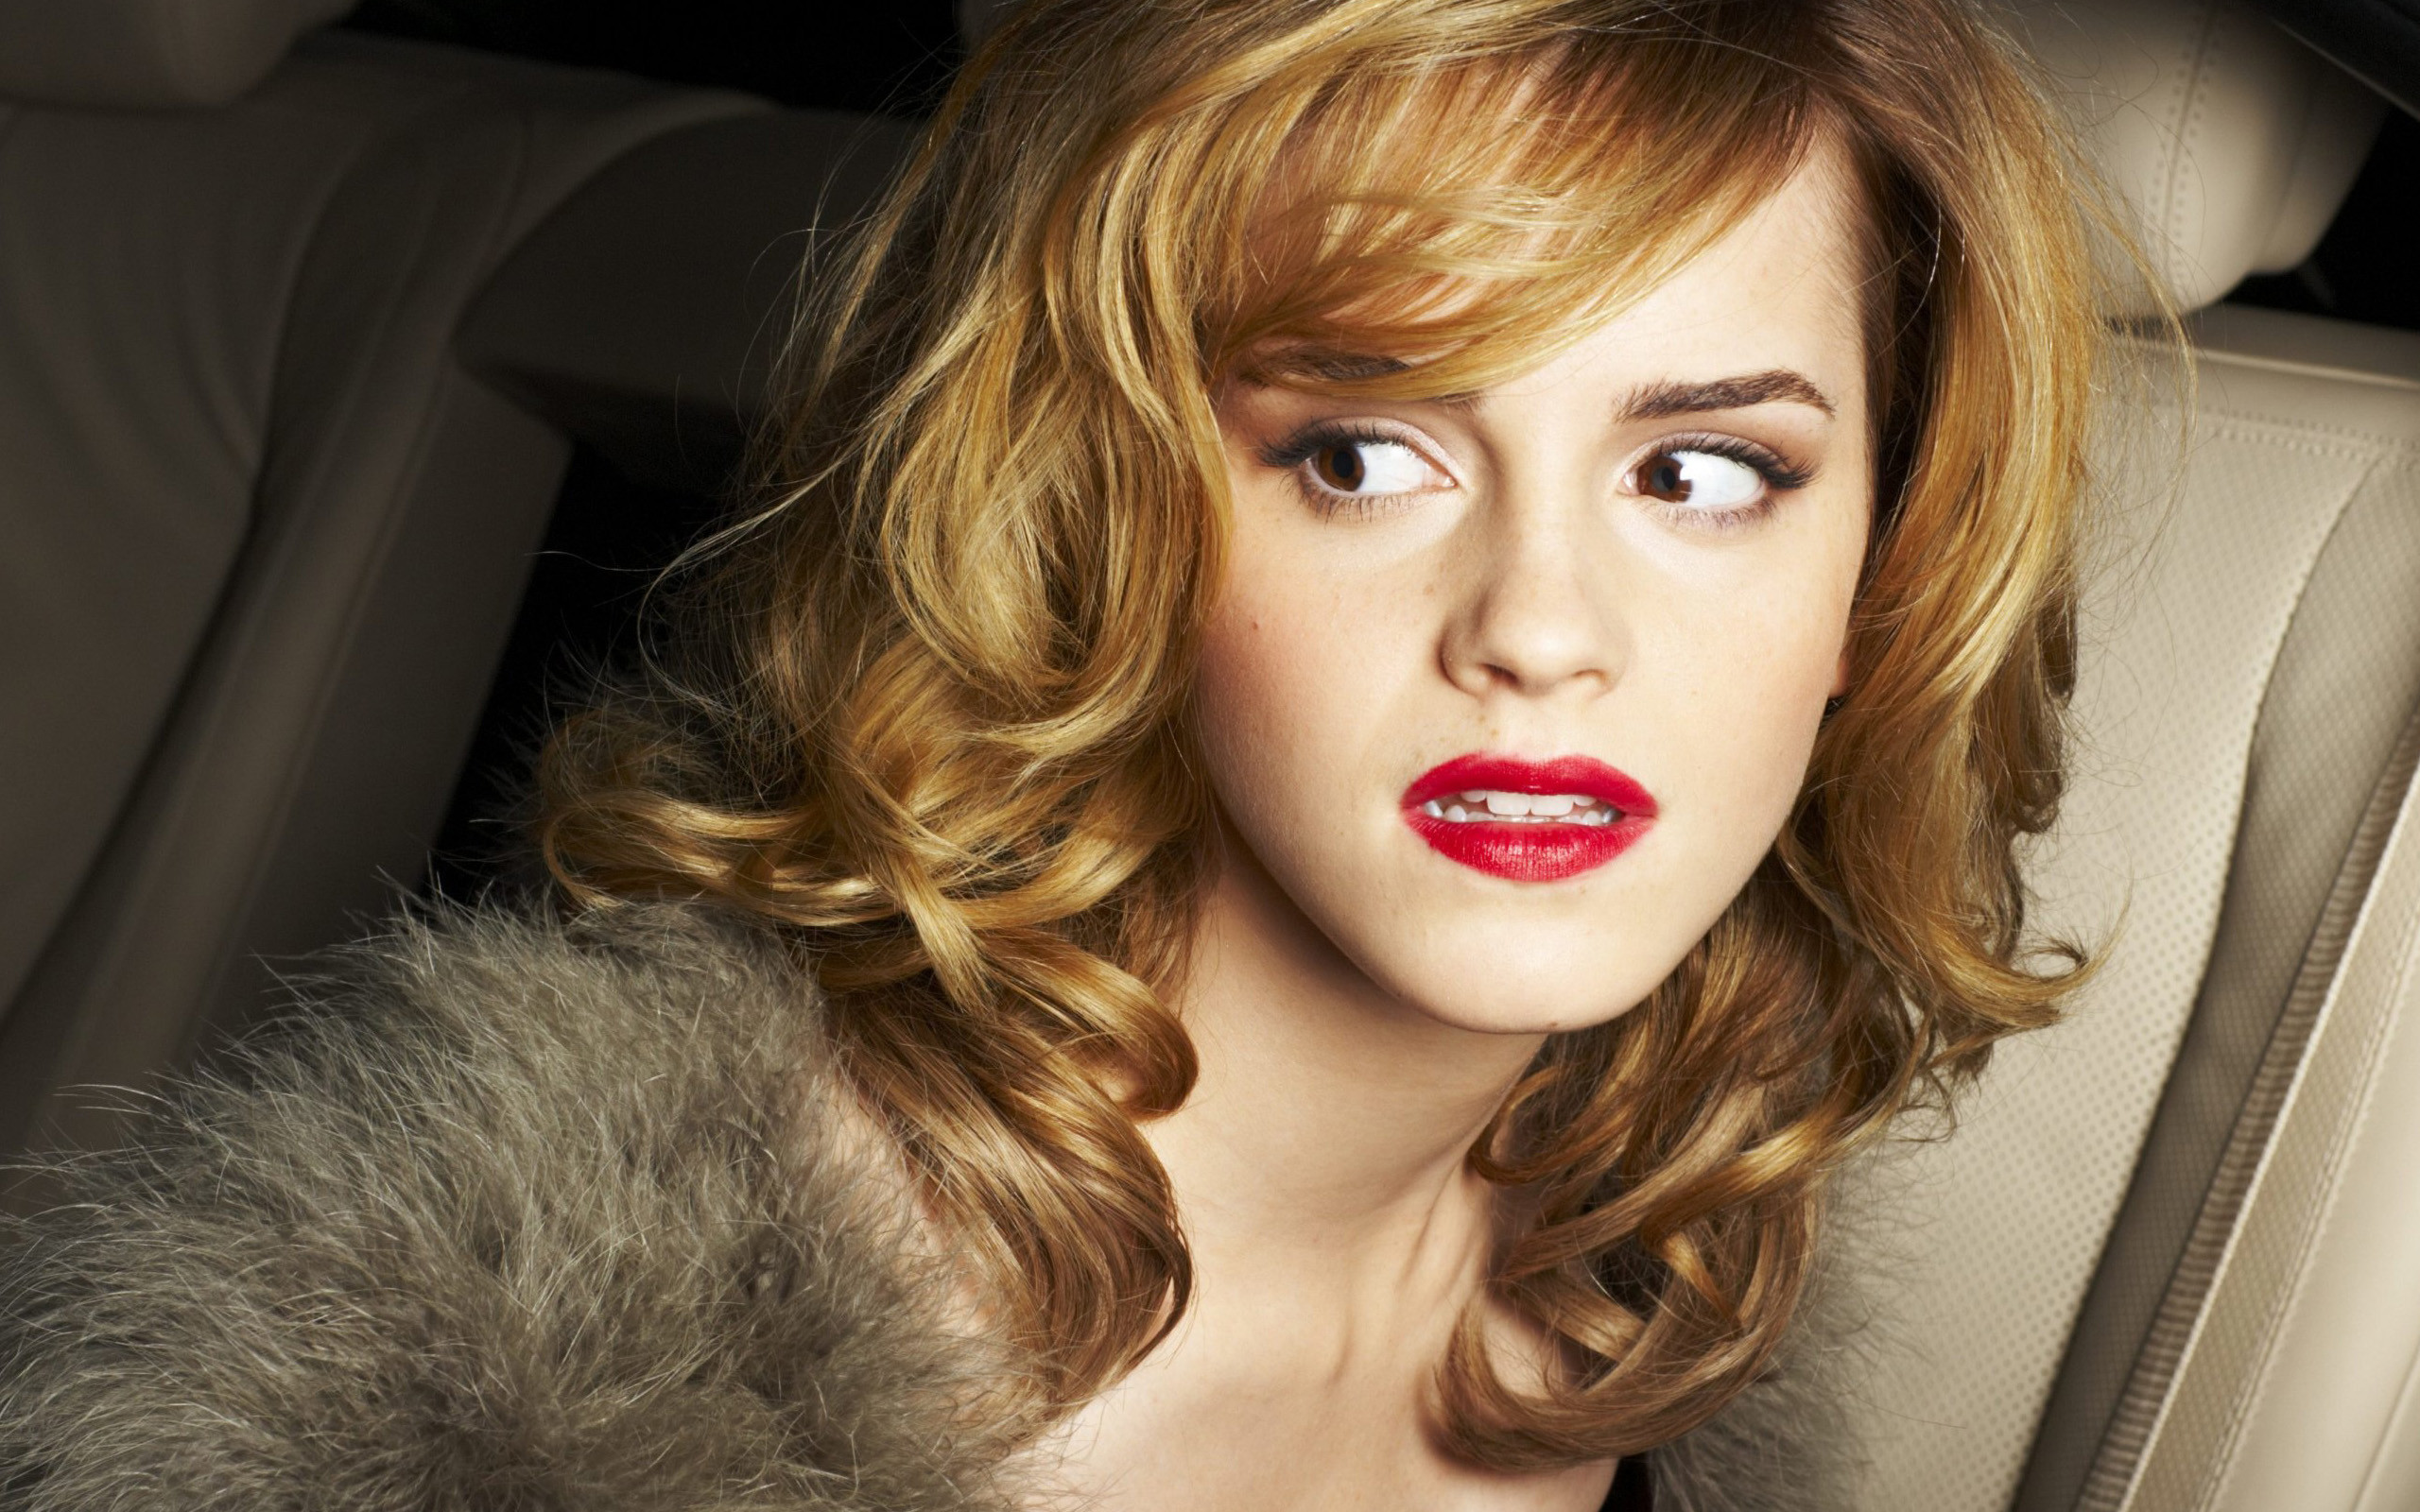 wallpaper.wiki-Emma-watson-Country-Girl-Images-PIC-